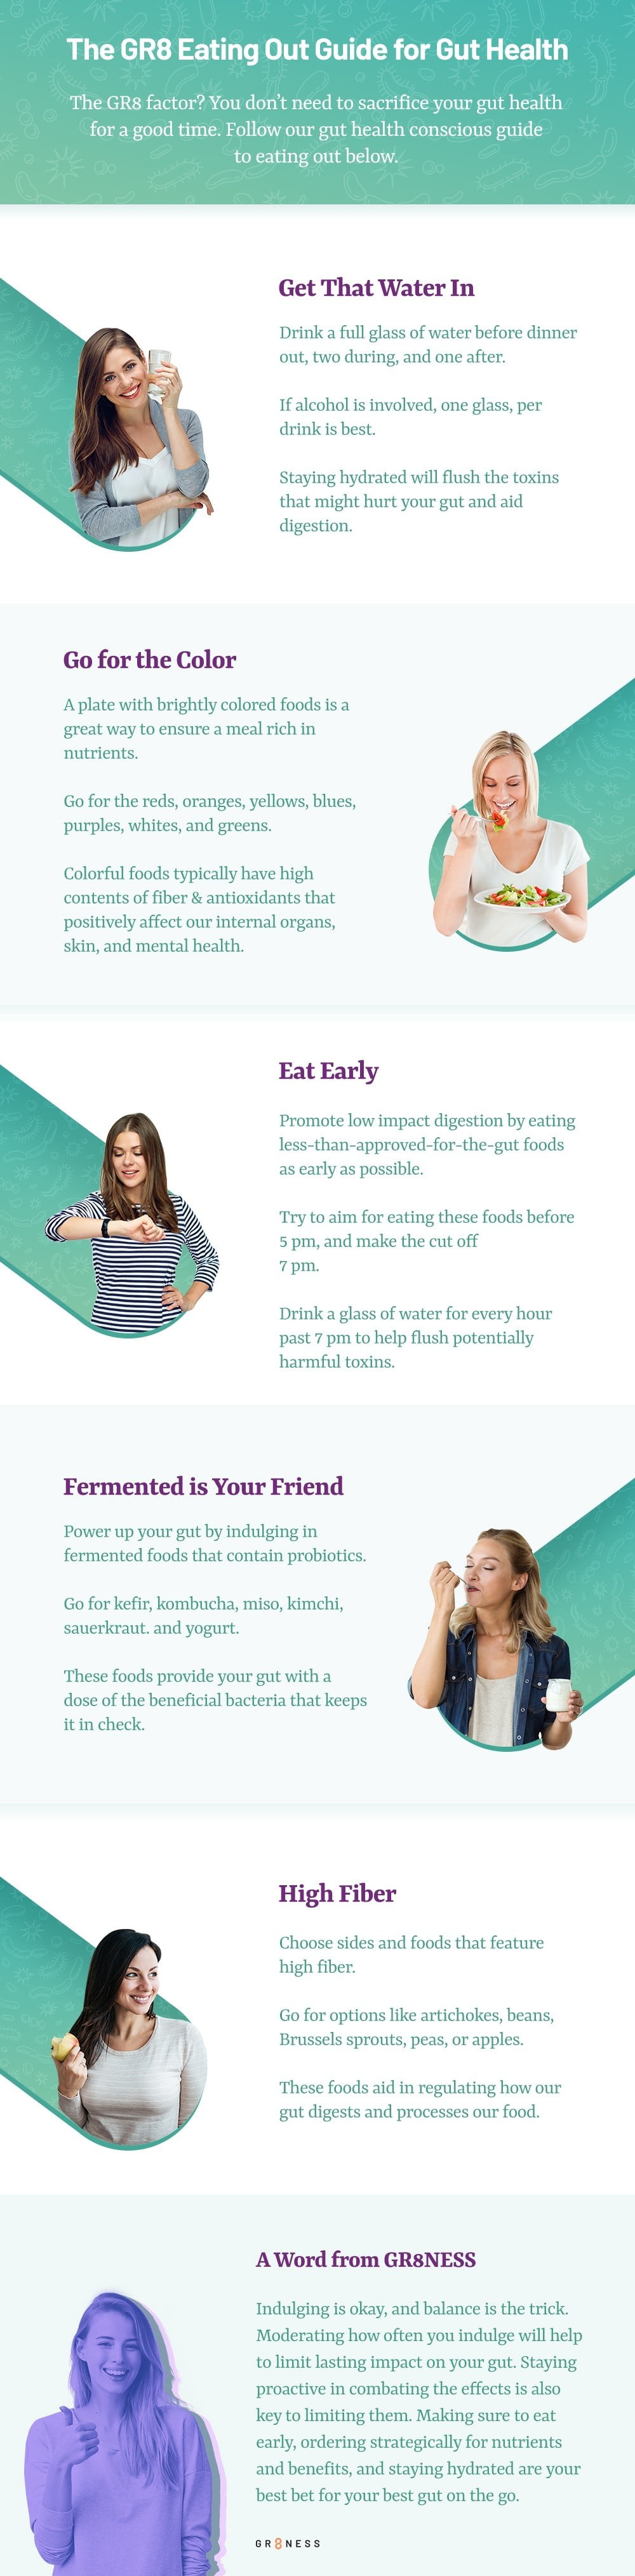 List of tips for eating out and gut health